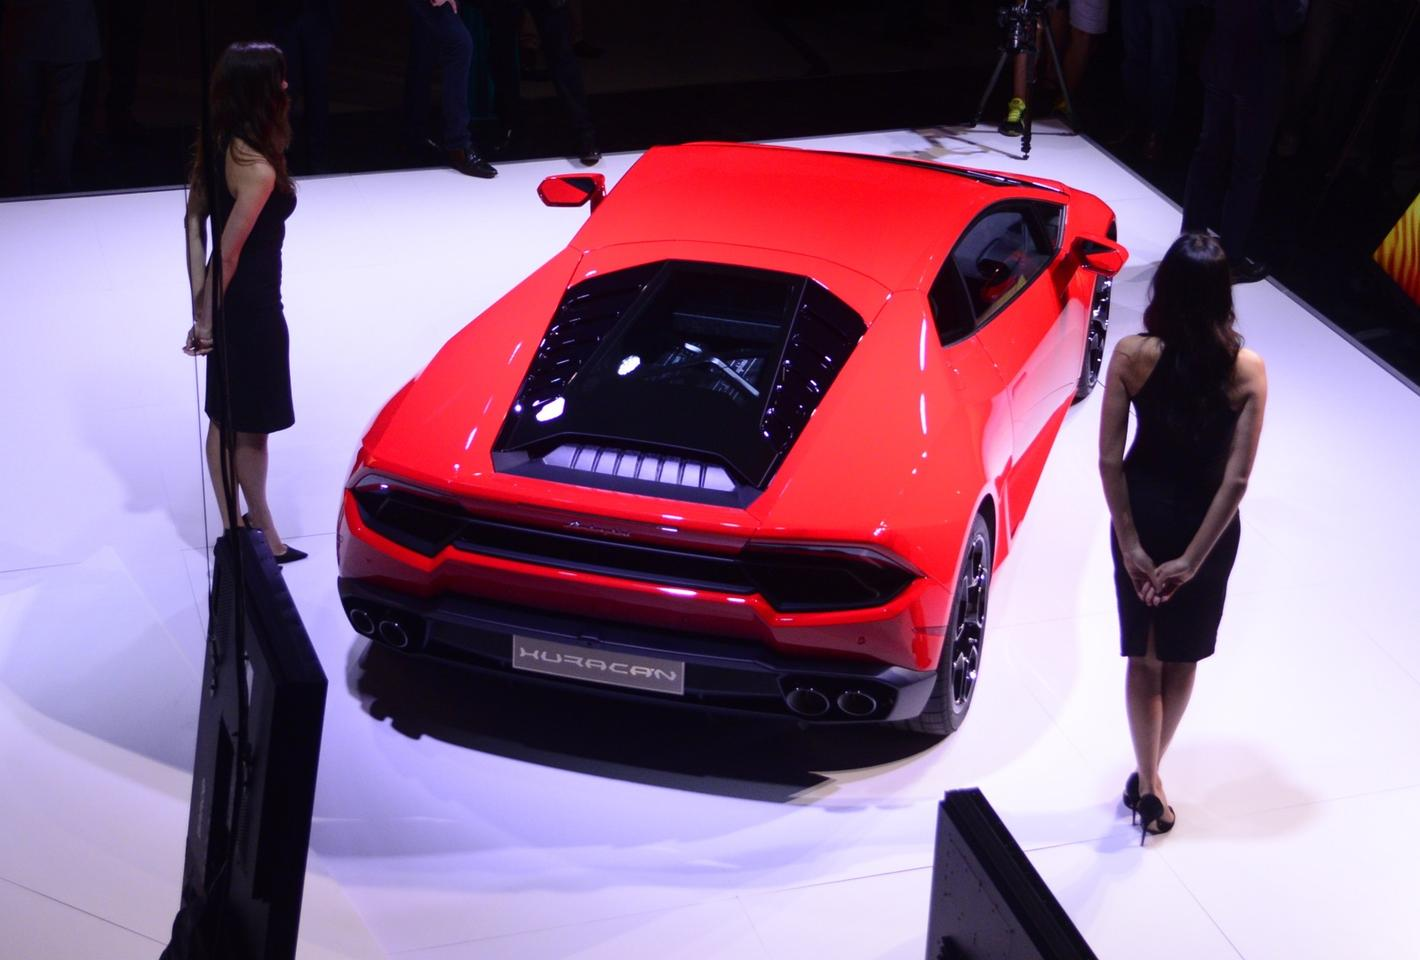 Lamborghini positions the RWD Huracan as a purer, more intense sports car experience